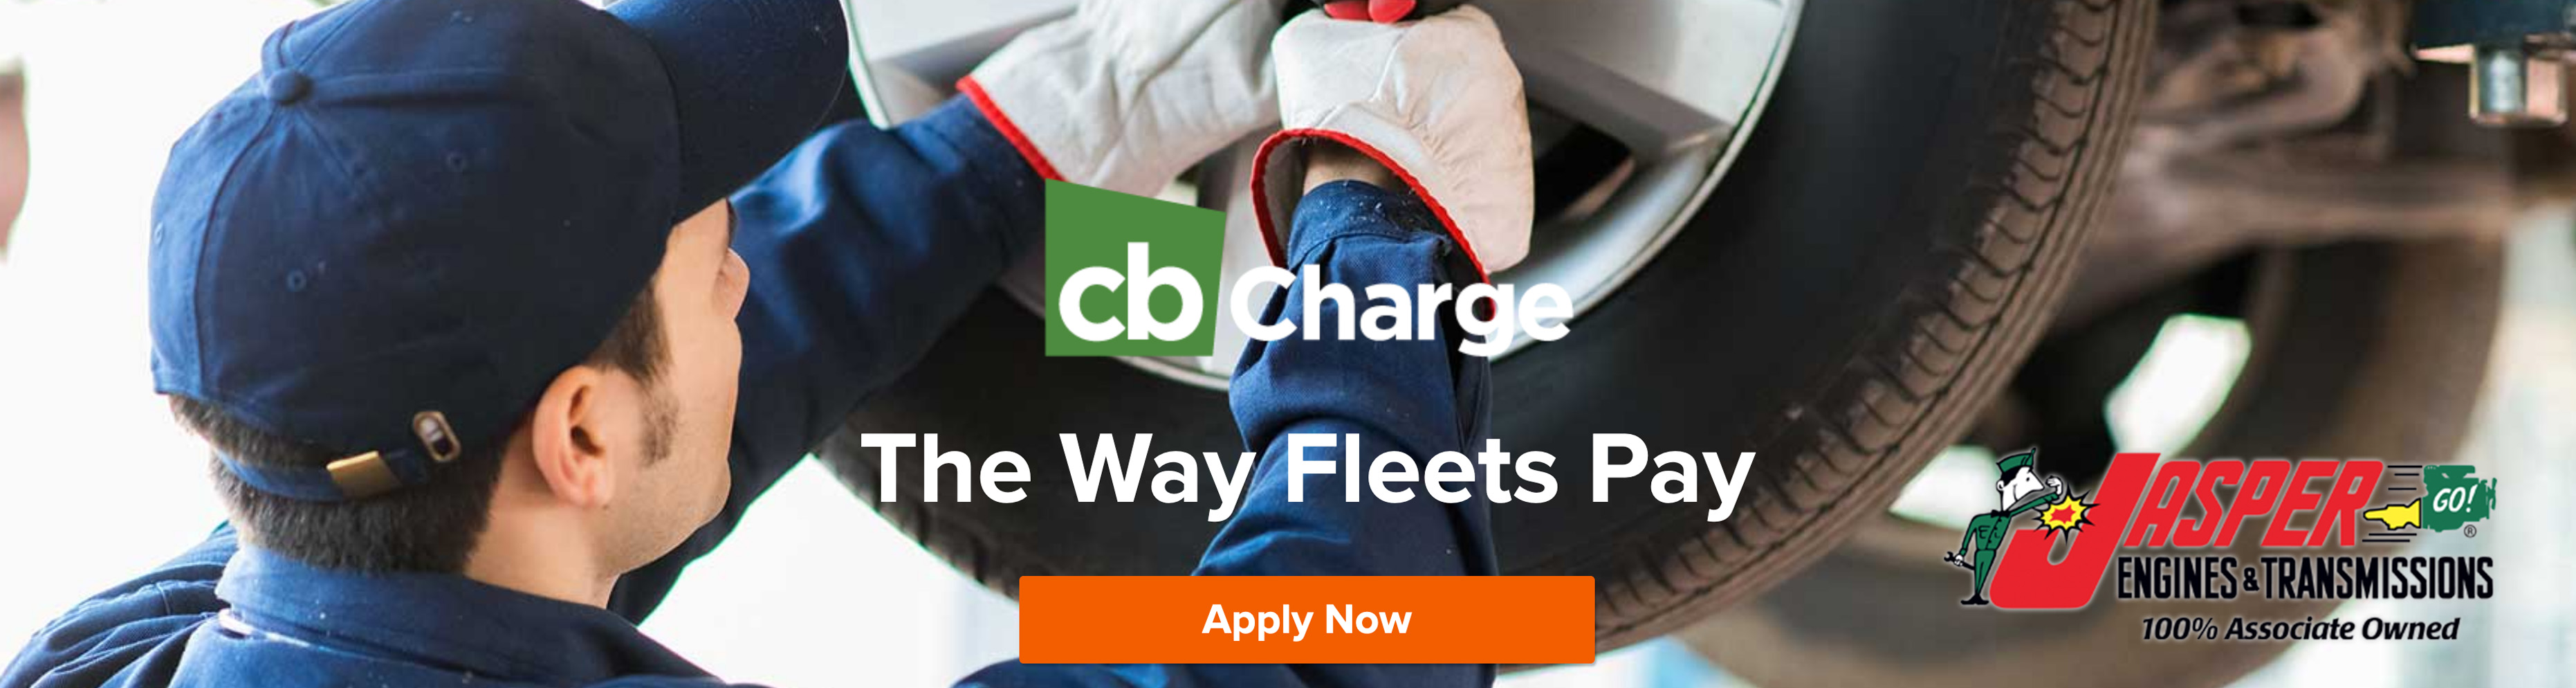 CB CHARGE Jasper Fleet Program Application